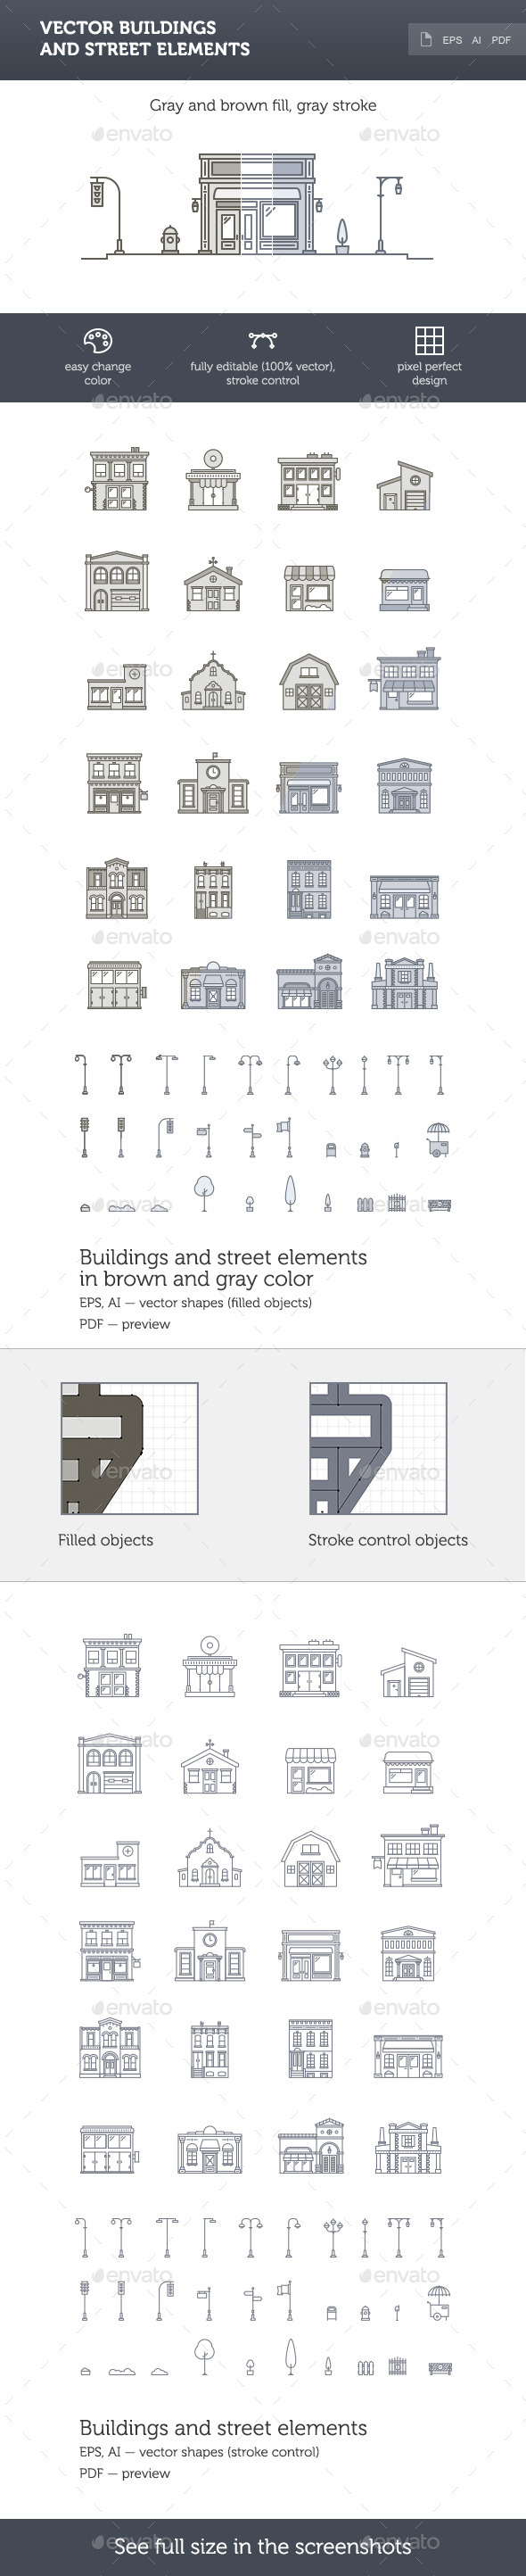 GraphicRiver Vector Buildings and Street Elements 10117885